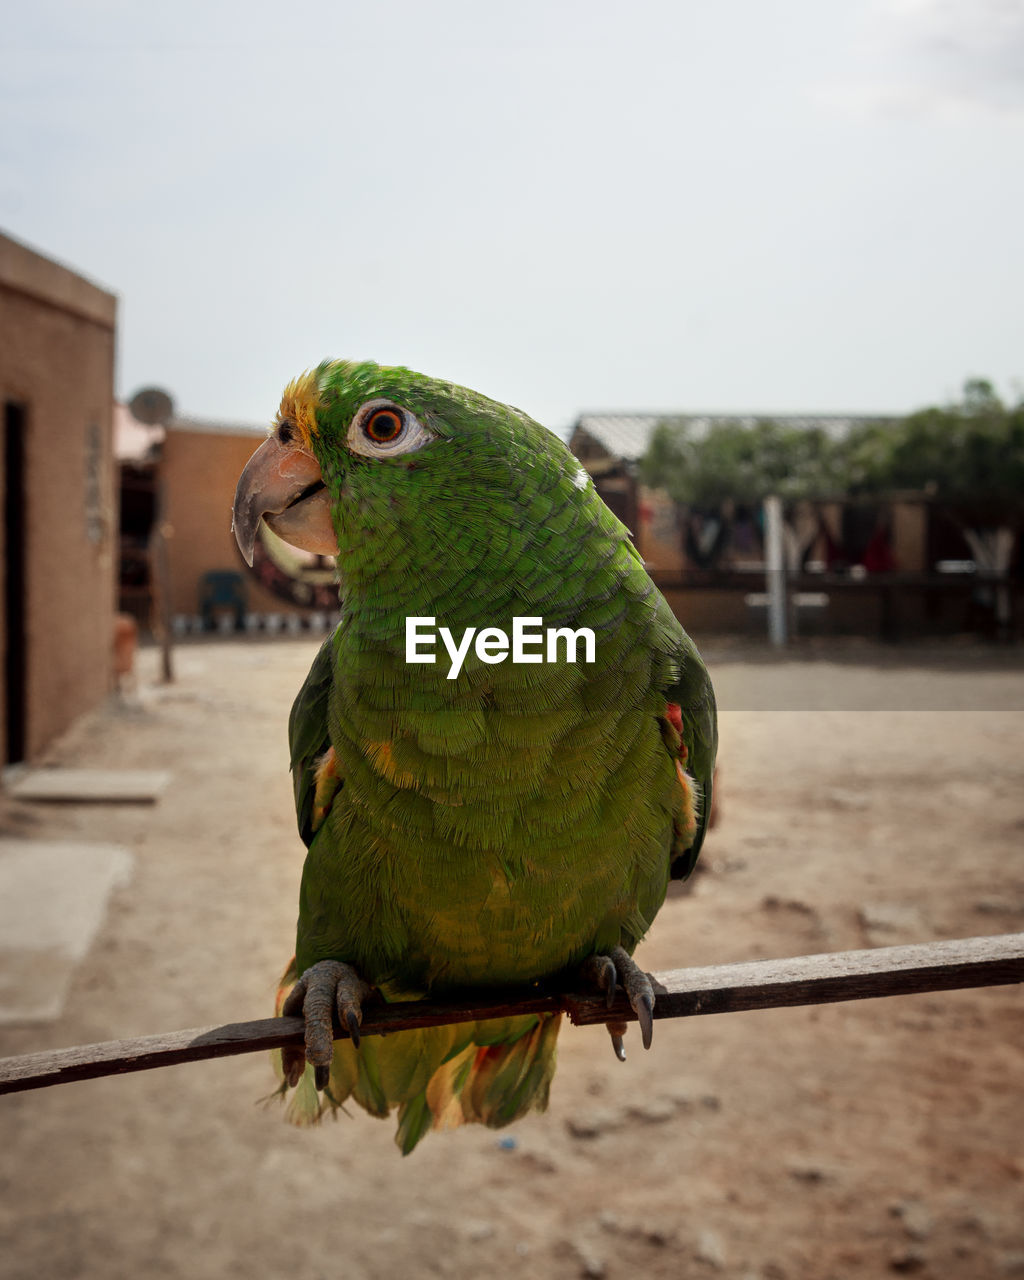 vertebrate, bird, animal themes, parrot, animal, focus on foreground, one animal, animal wildlife, animals in the wild, perching, close-up, green color, day, nature, outdoors, no people, full length, pets, looking, domestic